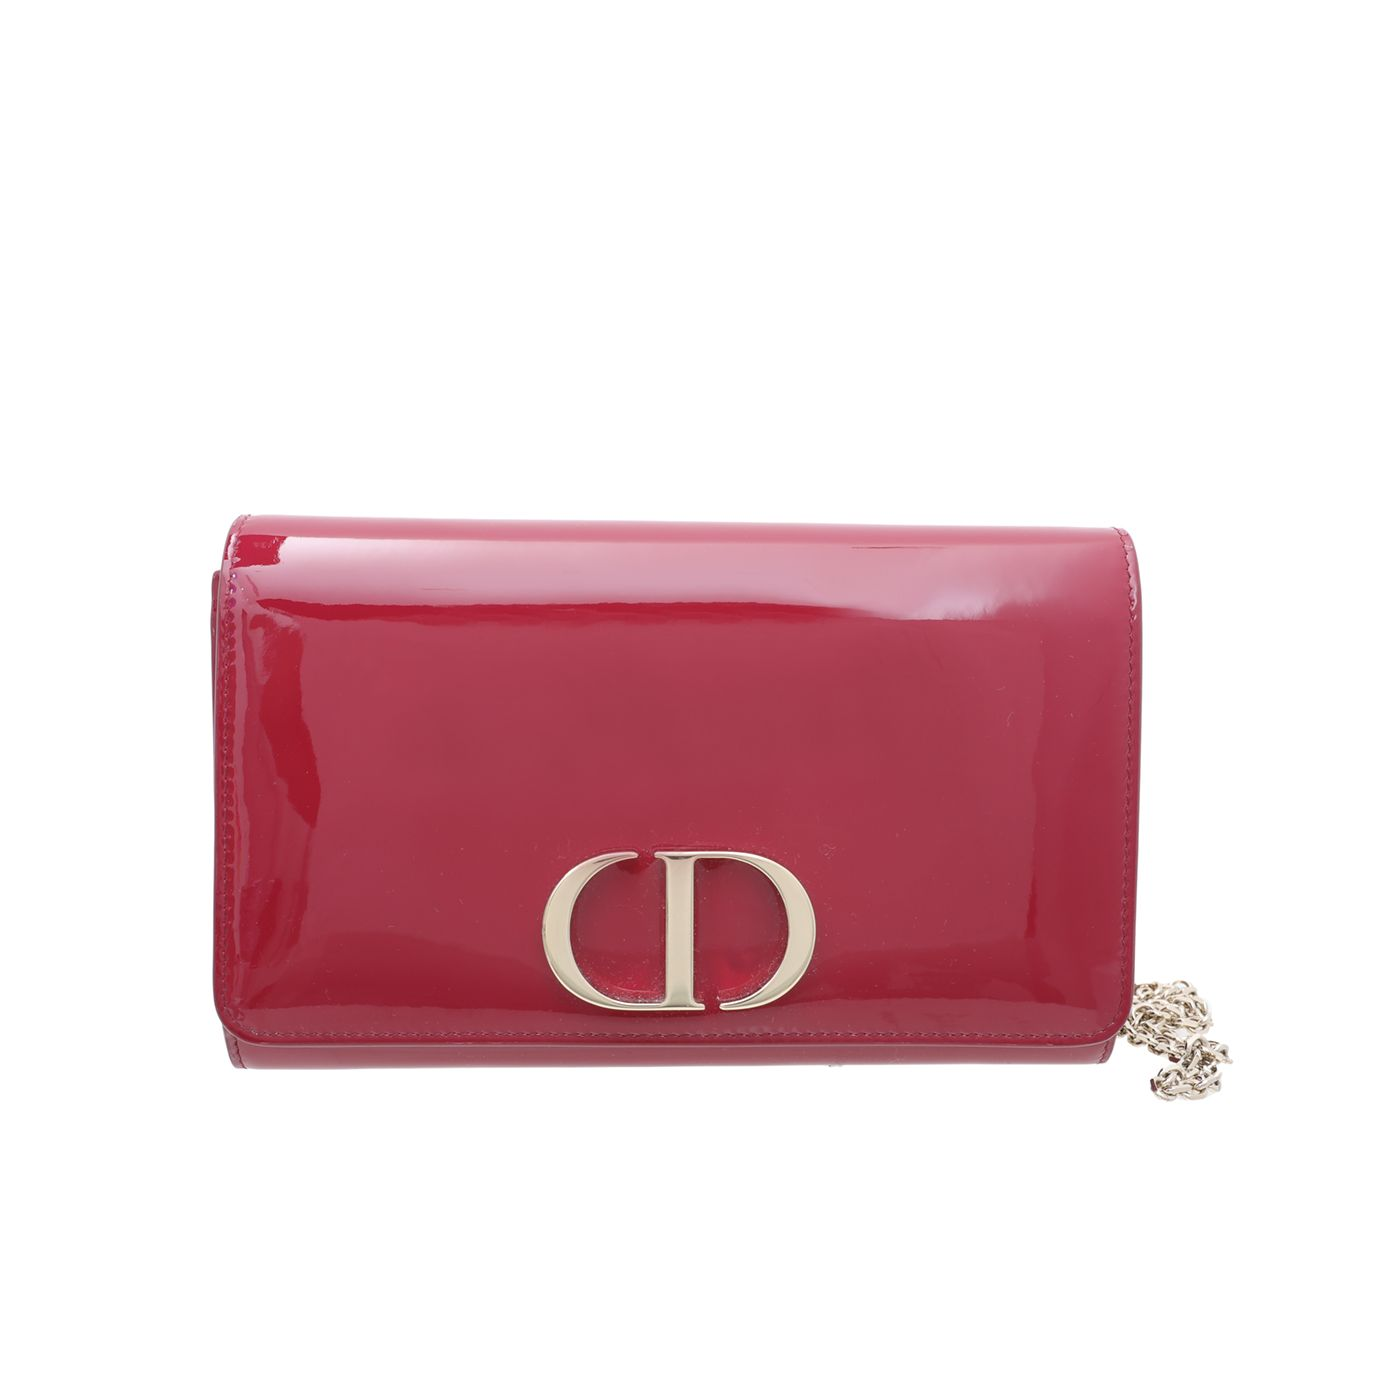 Christian Dior Cherry Red 30 Montaigne WOC